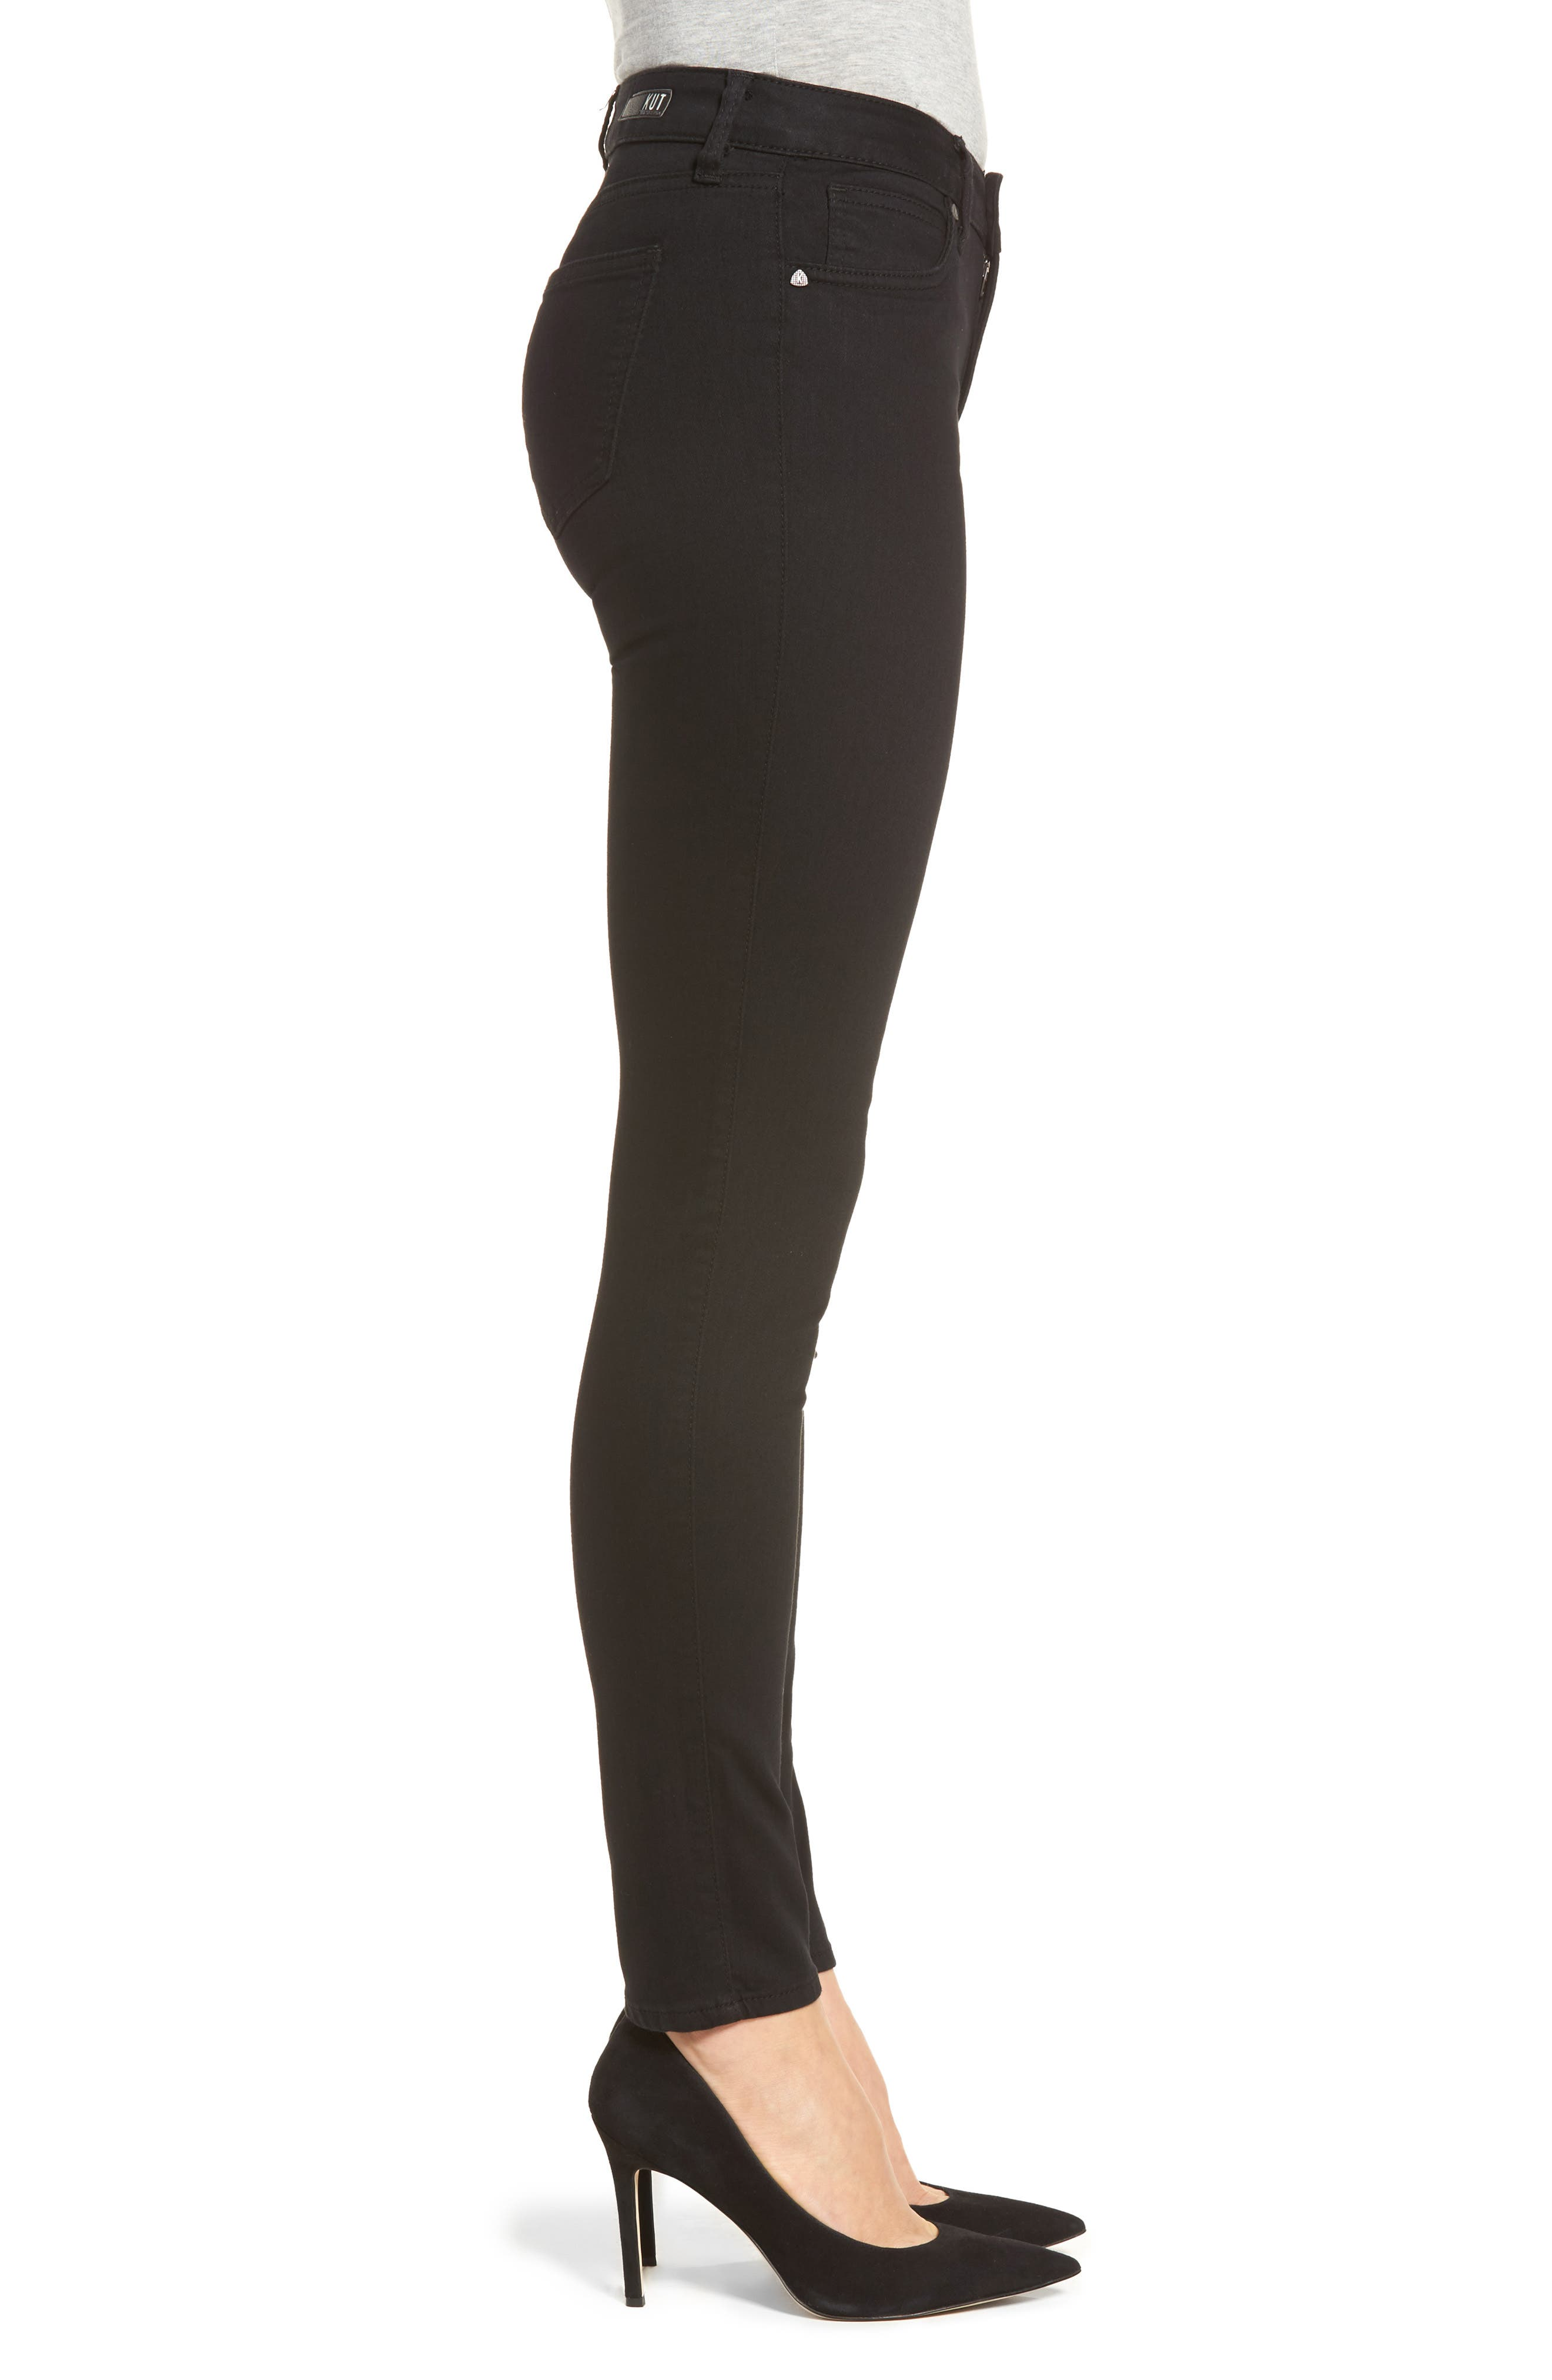 Diana Curvy Fit Skinny Jeans,                             Alternate thumbnail 3, color,                             002